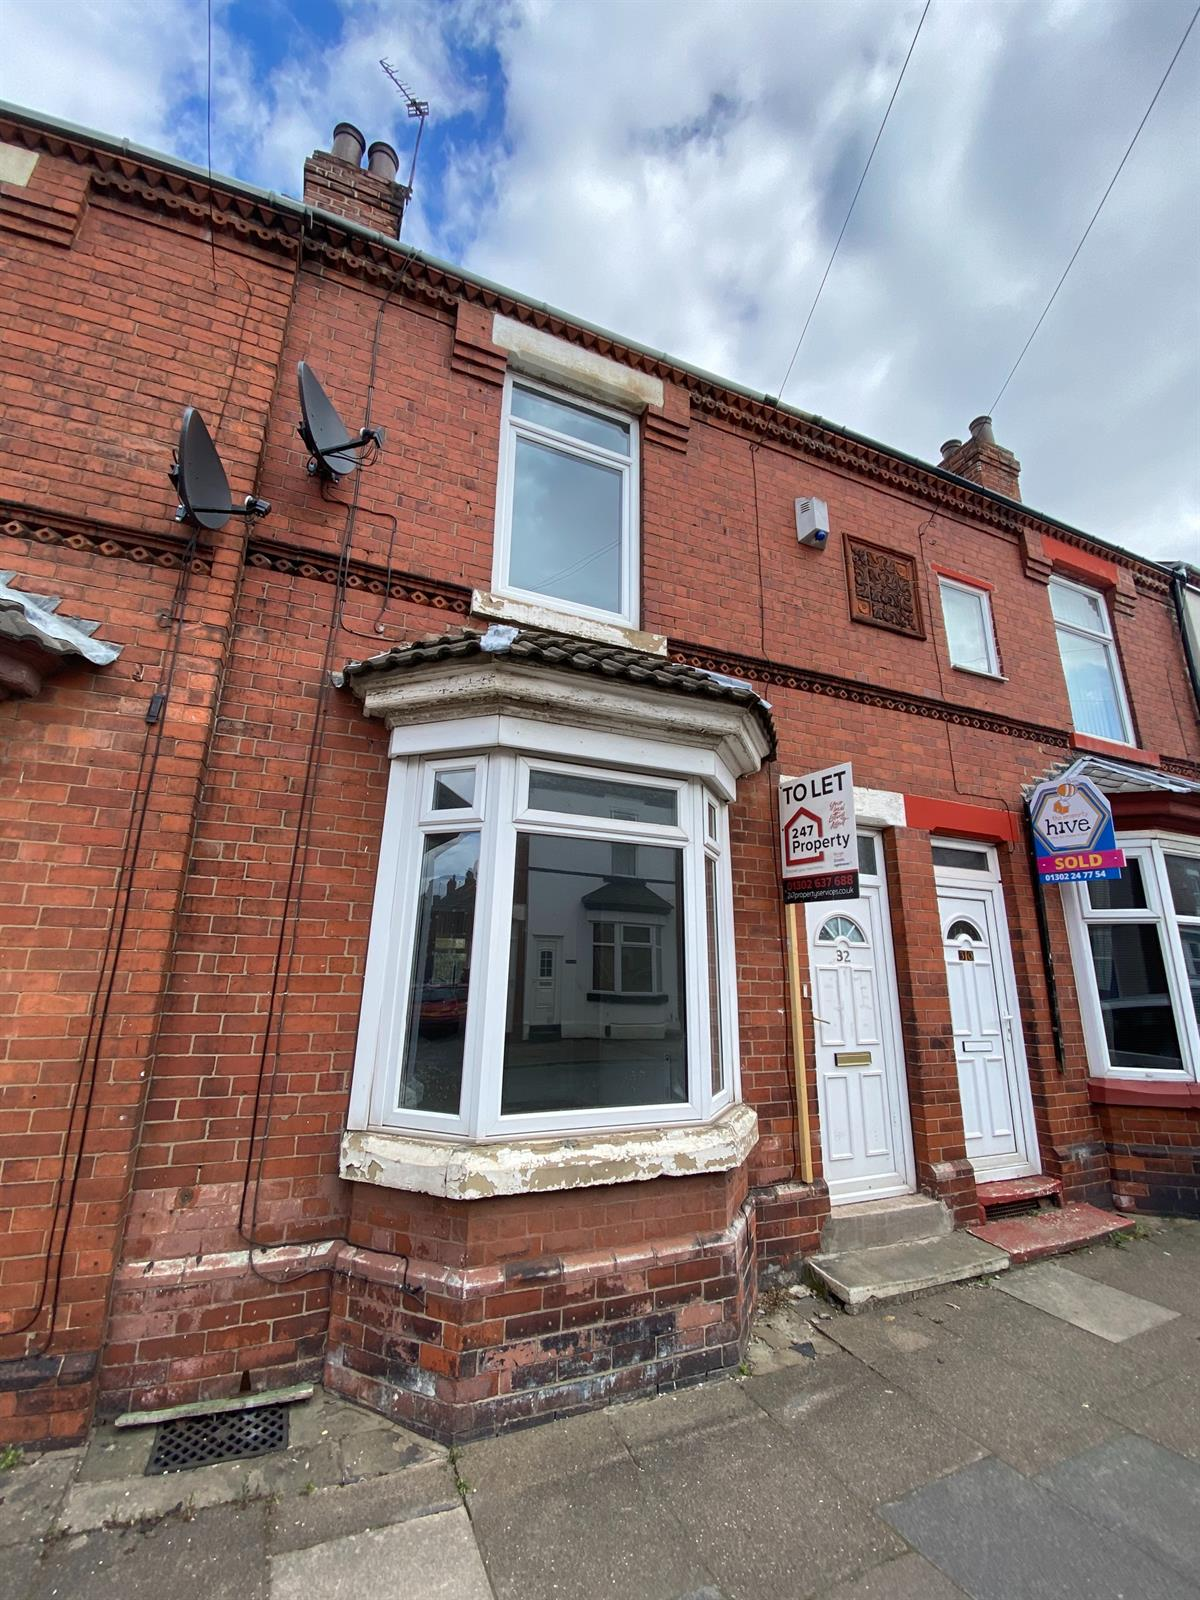 To Let - 2 bedroom Terraced house, Furnival Road, Balby - £525 pcm